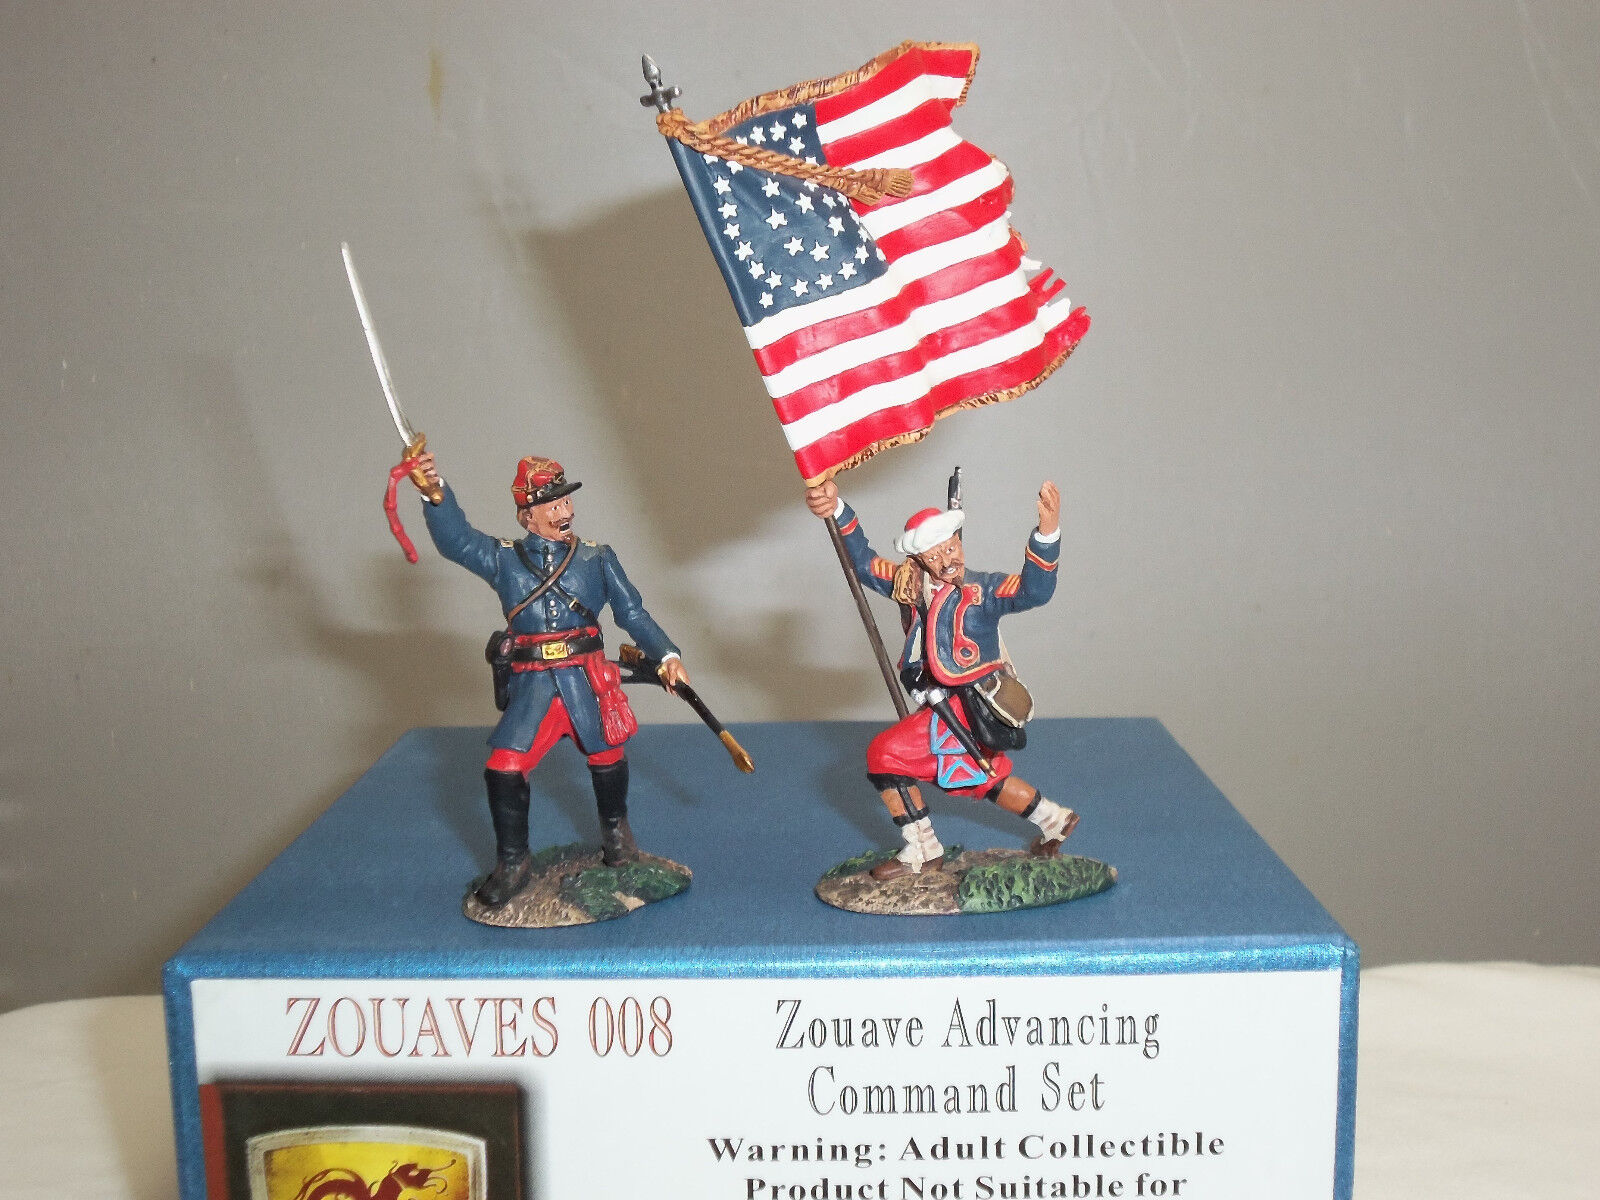 CONTE ZOUAVES008 ZOUAVE ADVANCING AMERICAN CIVIL WAR TOY SOLDIER COMMAND SET